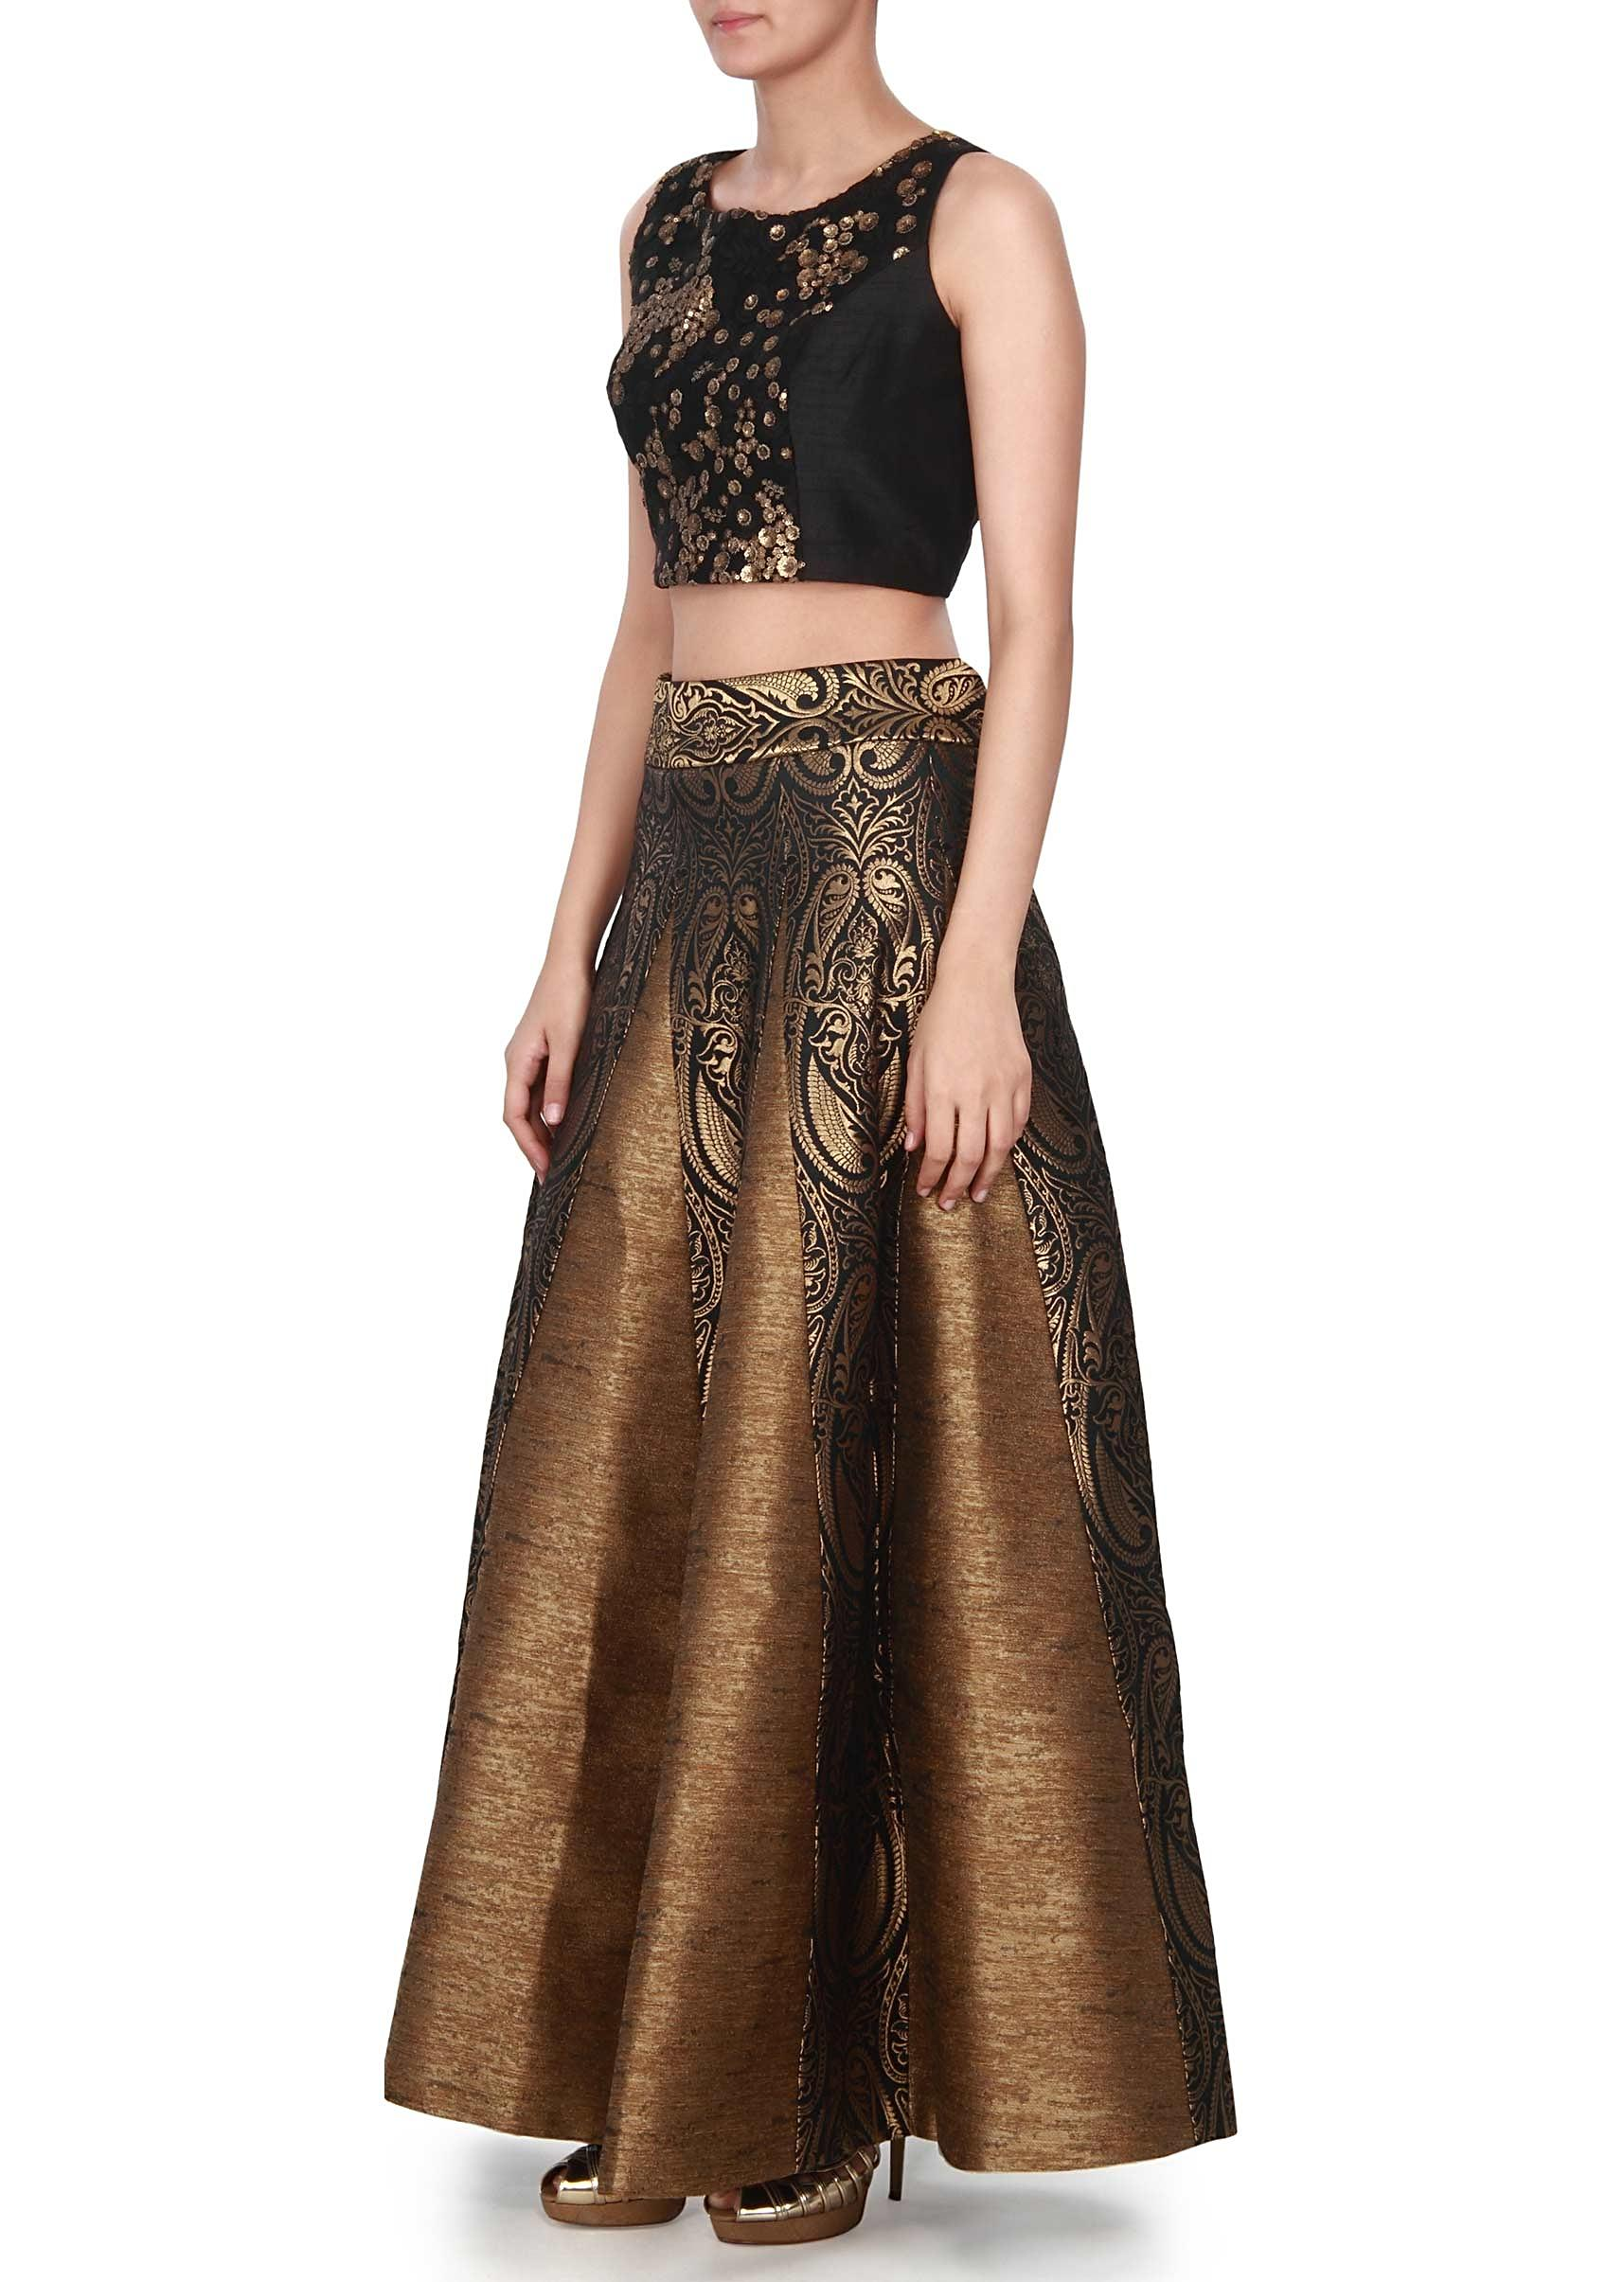 e58e96690 Black Long Skirt And Crop Top – DACC